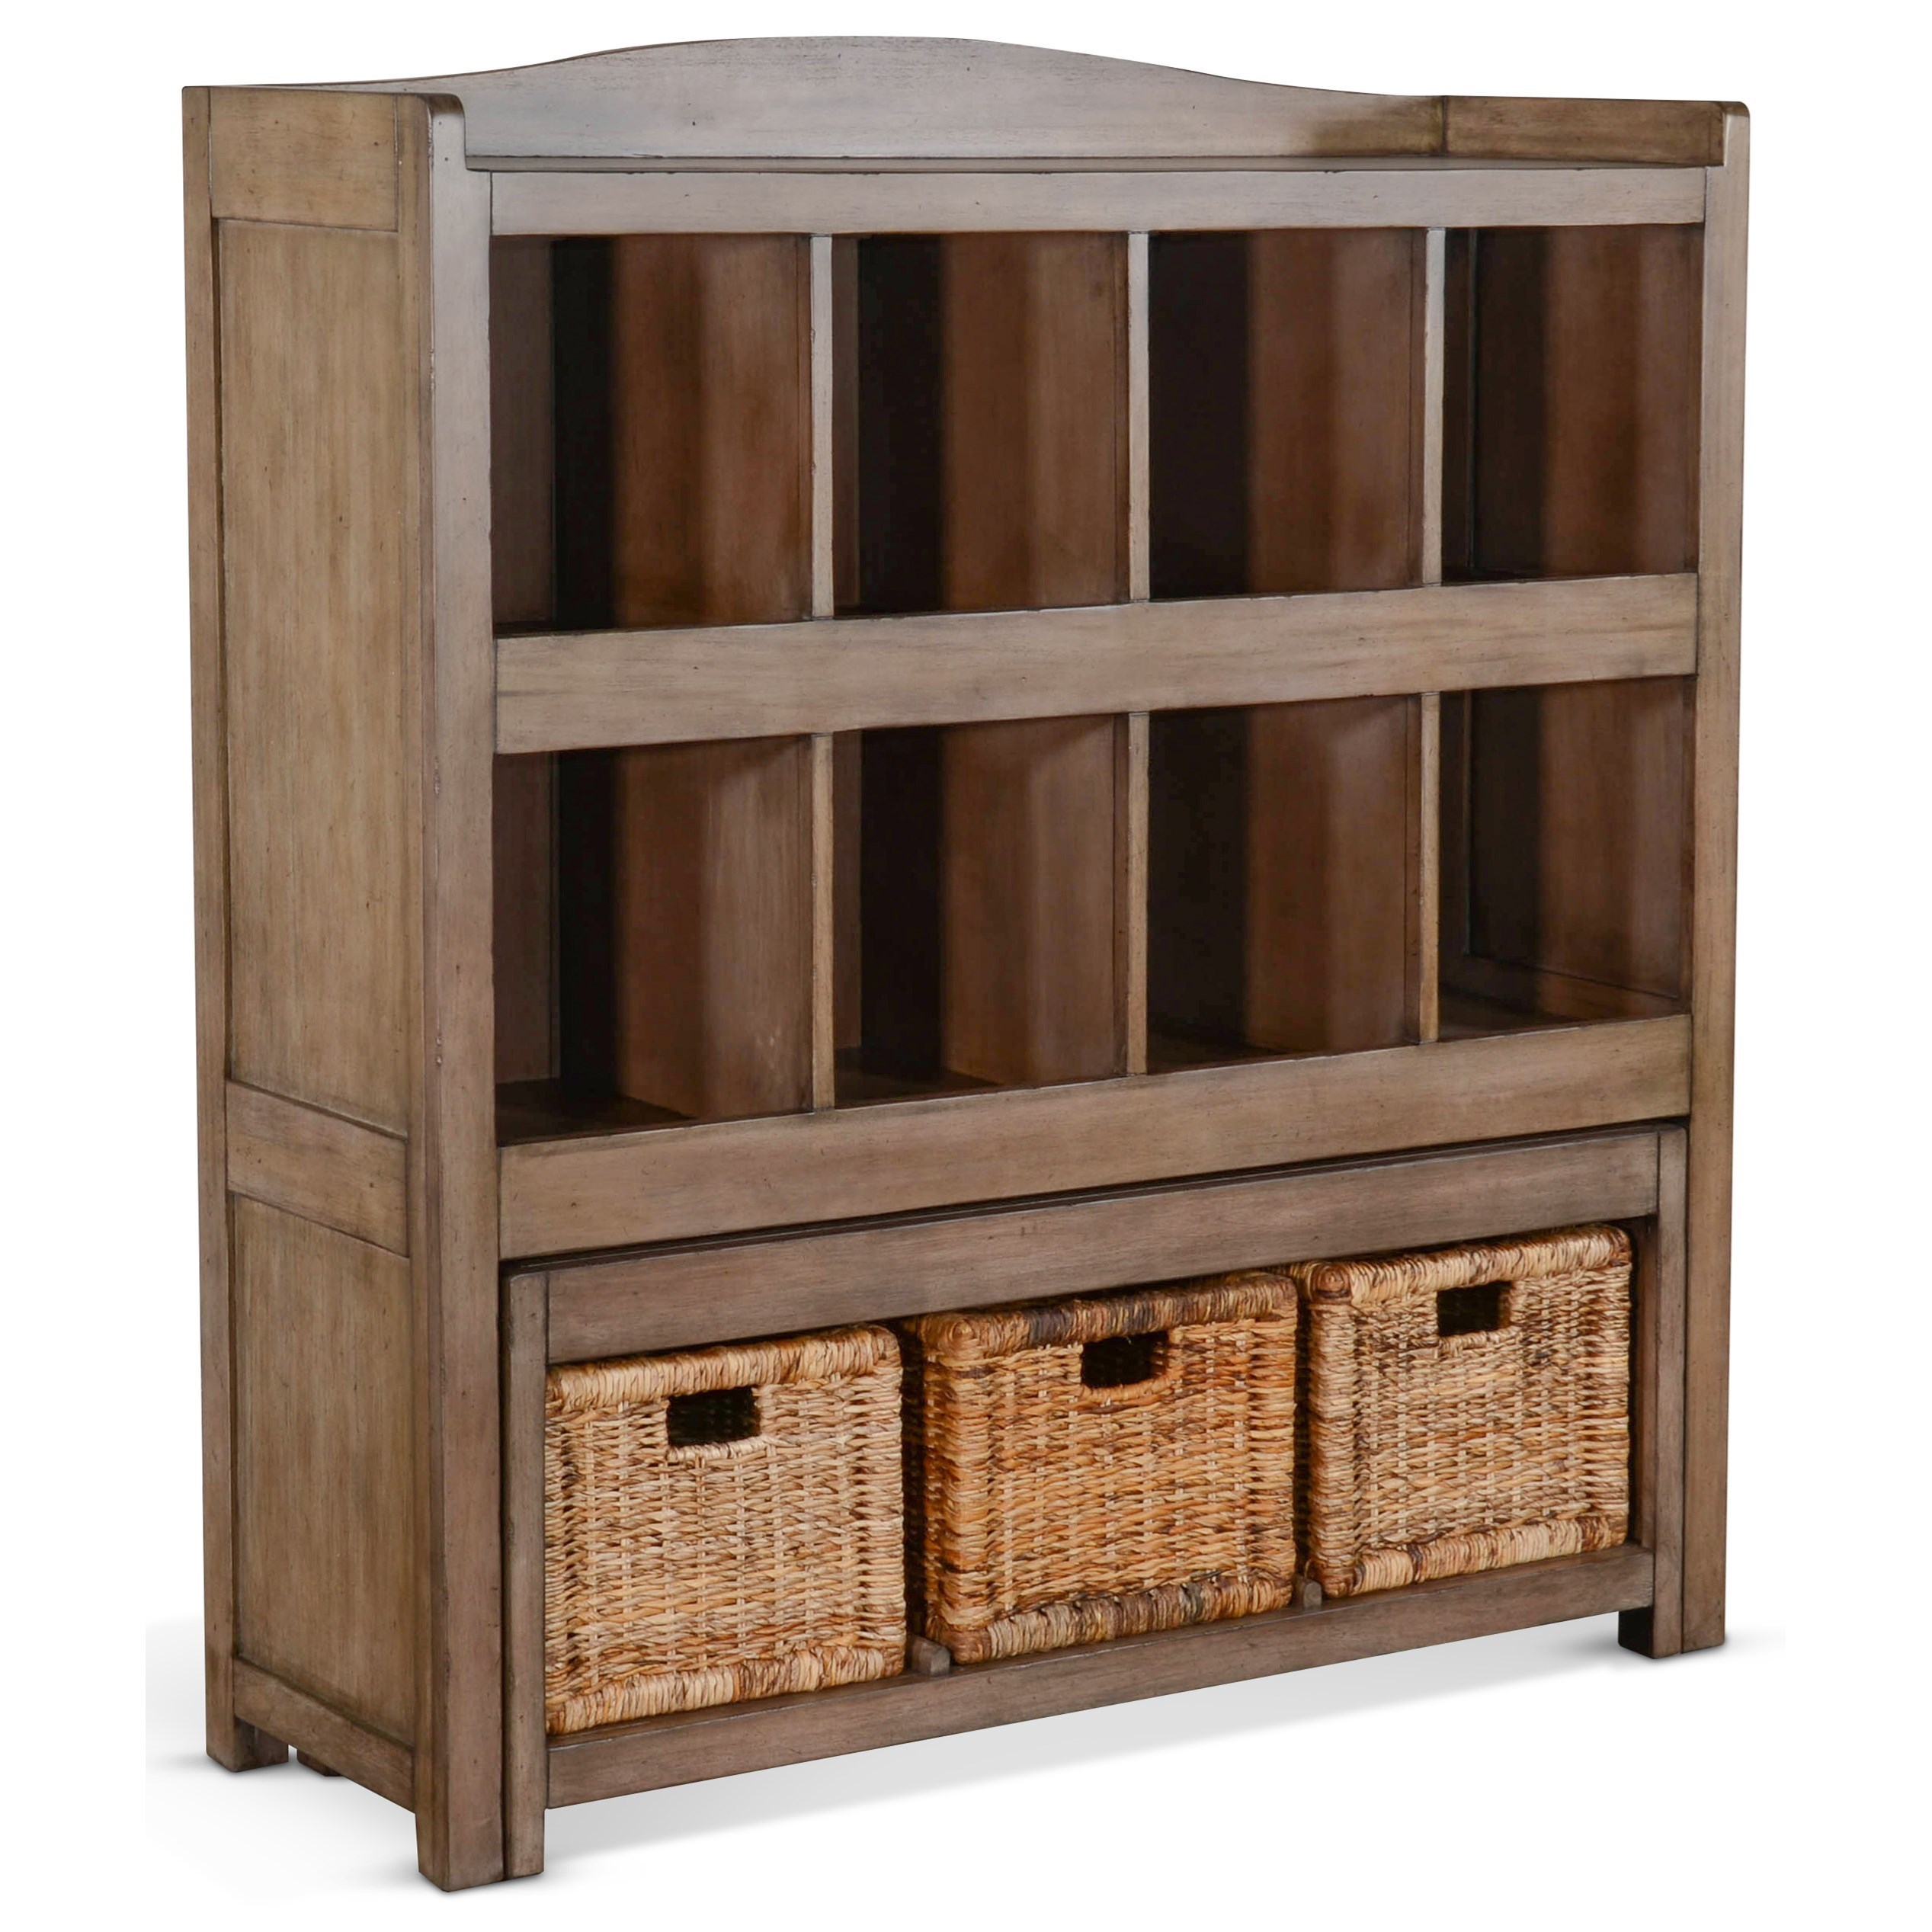 2993 Storage Bookcase w/ Trundle Bench by Sunny Designs at Miller Home